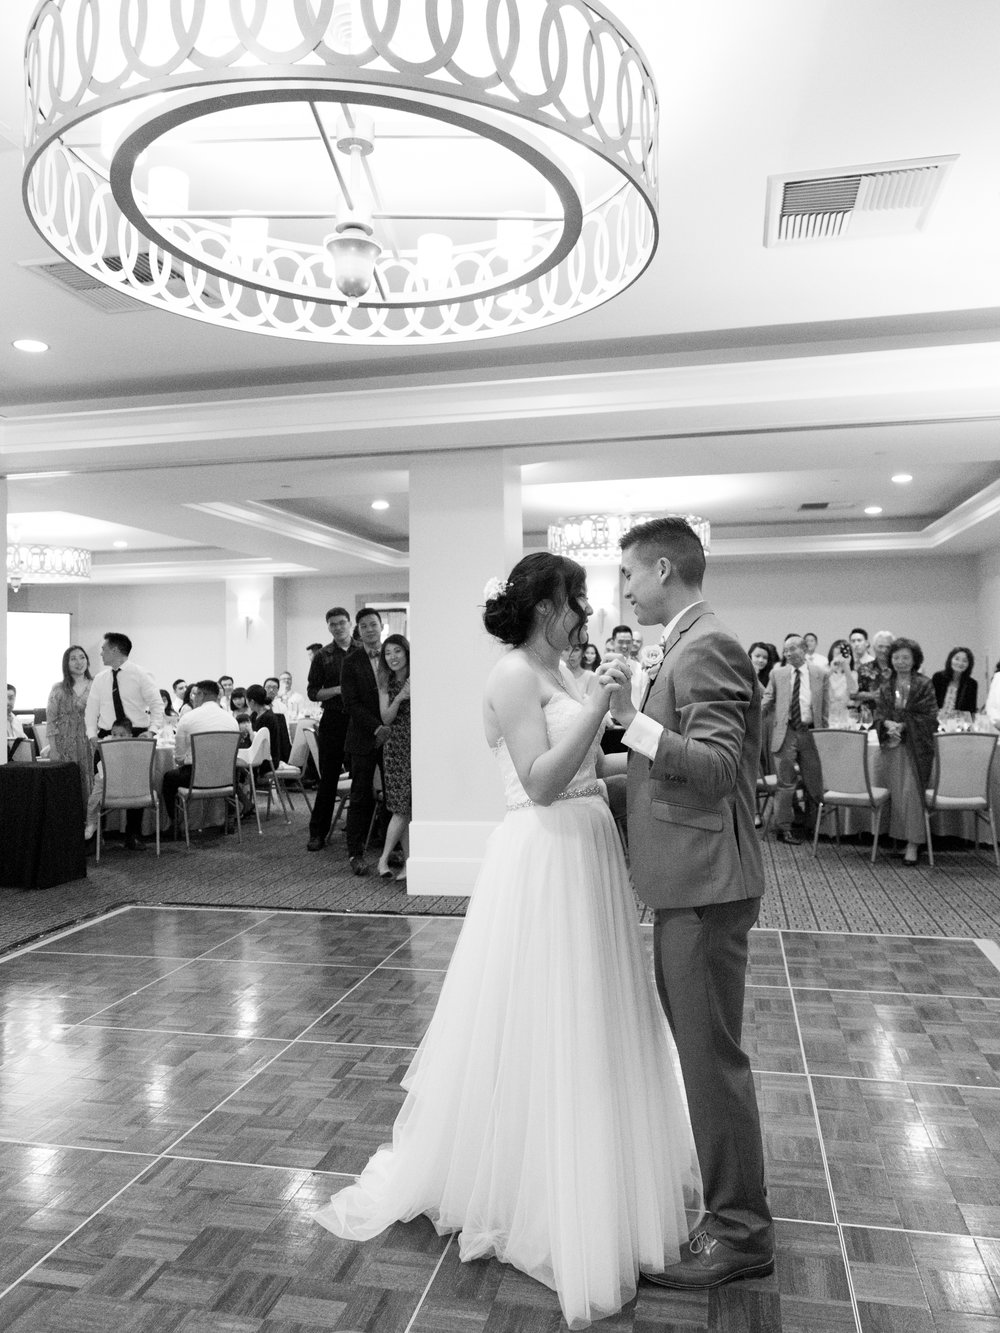 trynhphoto_wedding_photography_Standford_PaloAlto_SF_BayArea_Destination_OC_HA-418.jpg